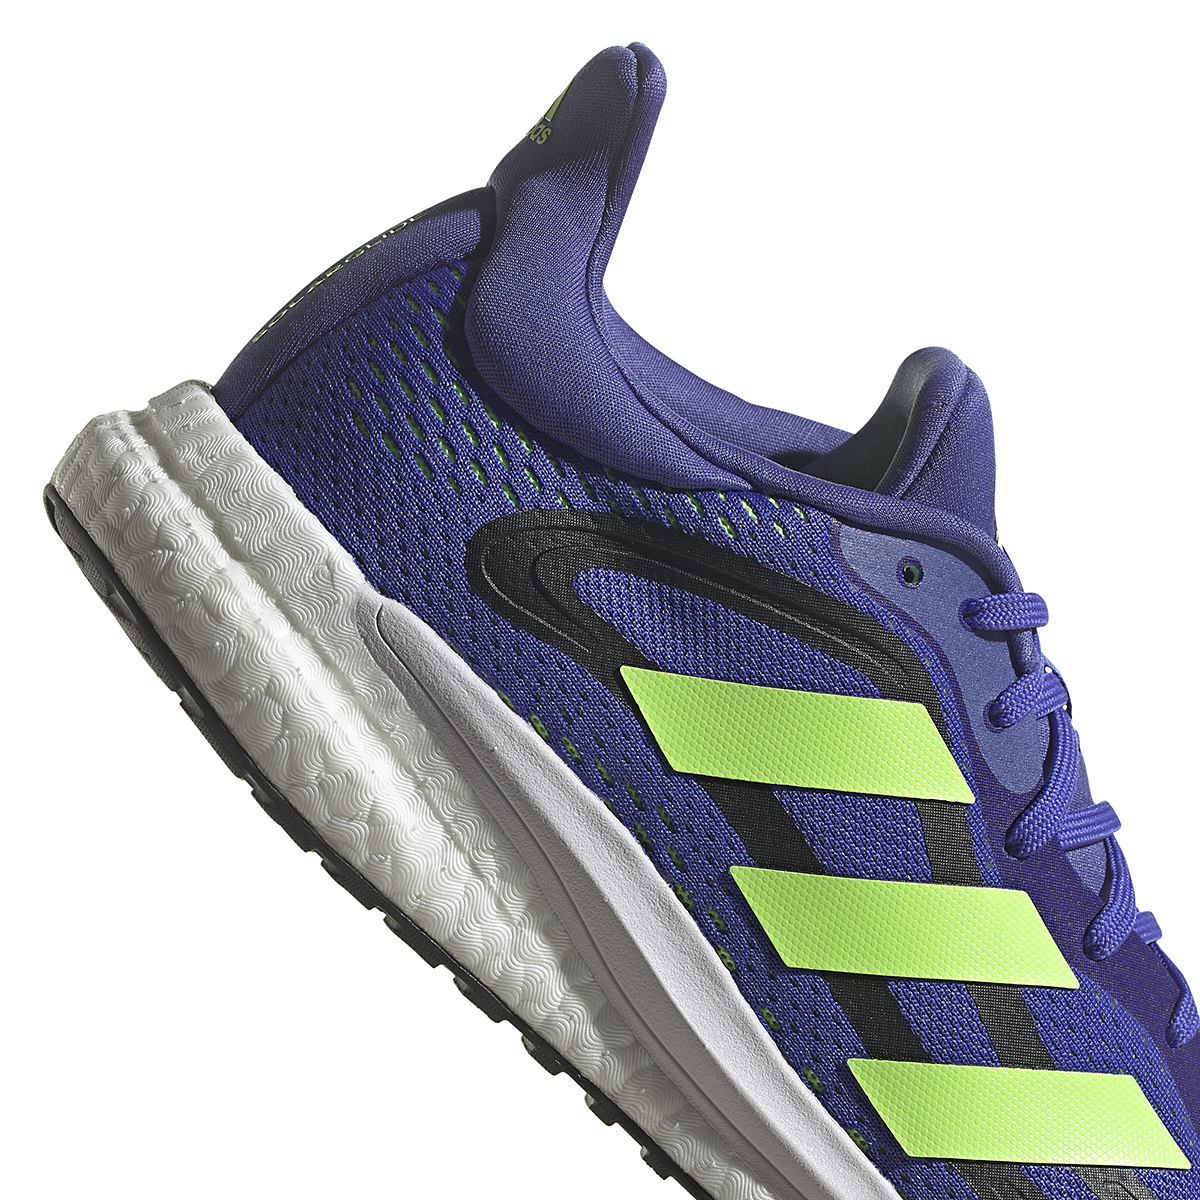 Men's Adidas SolarGlide 4 Running Shoe - Color: Sonic Ink/Signal Green/Core Black - Size: 6.5 - Width: Regular, Sonic Ink/Signal Green/Core Black, large, image 4